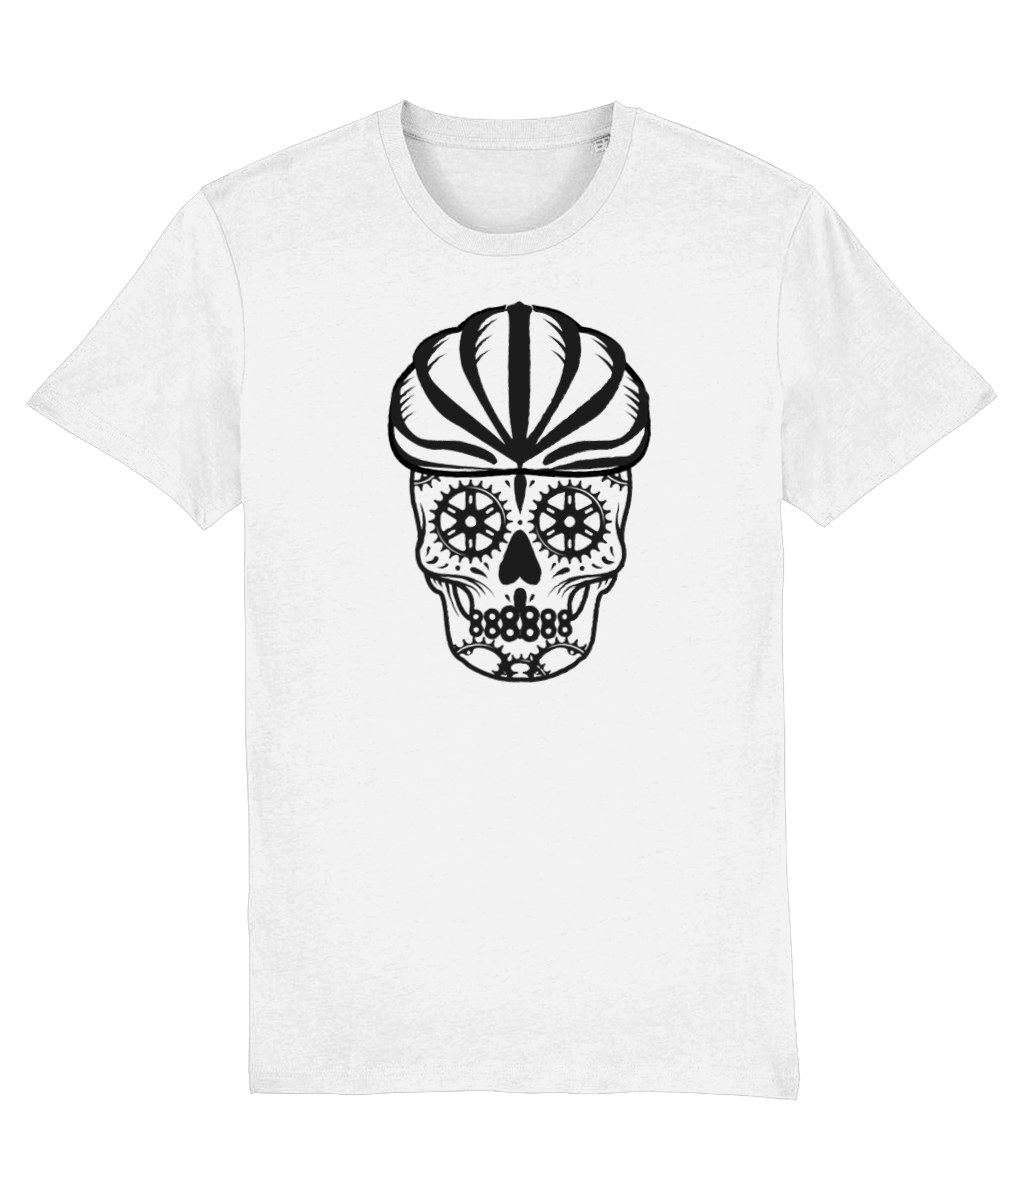 Cyclist B&W Sugar Skull T-Shirt